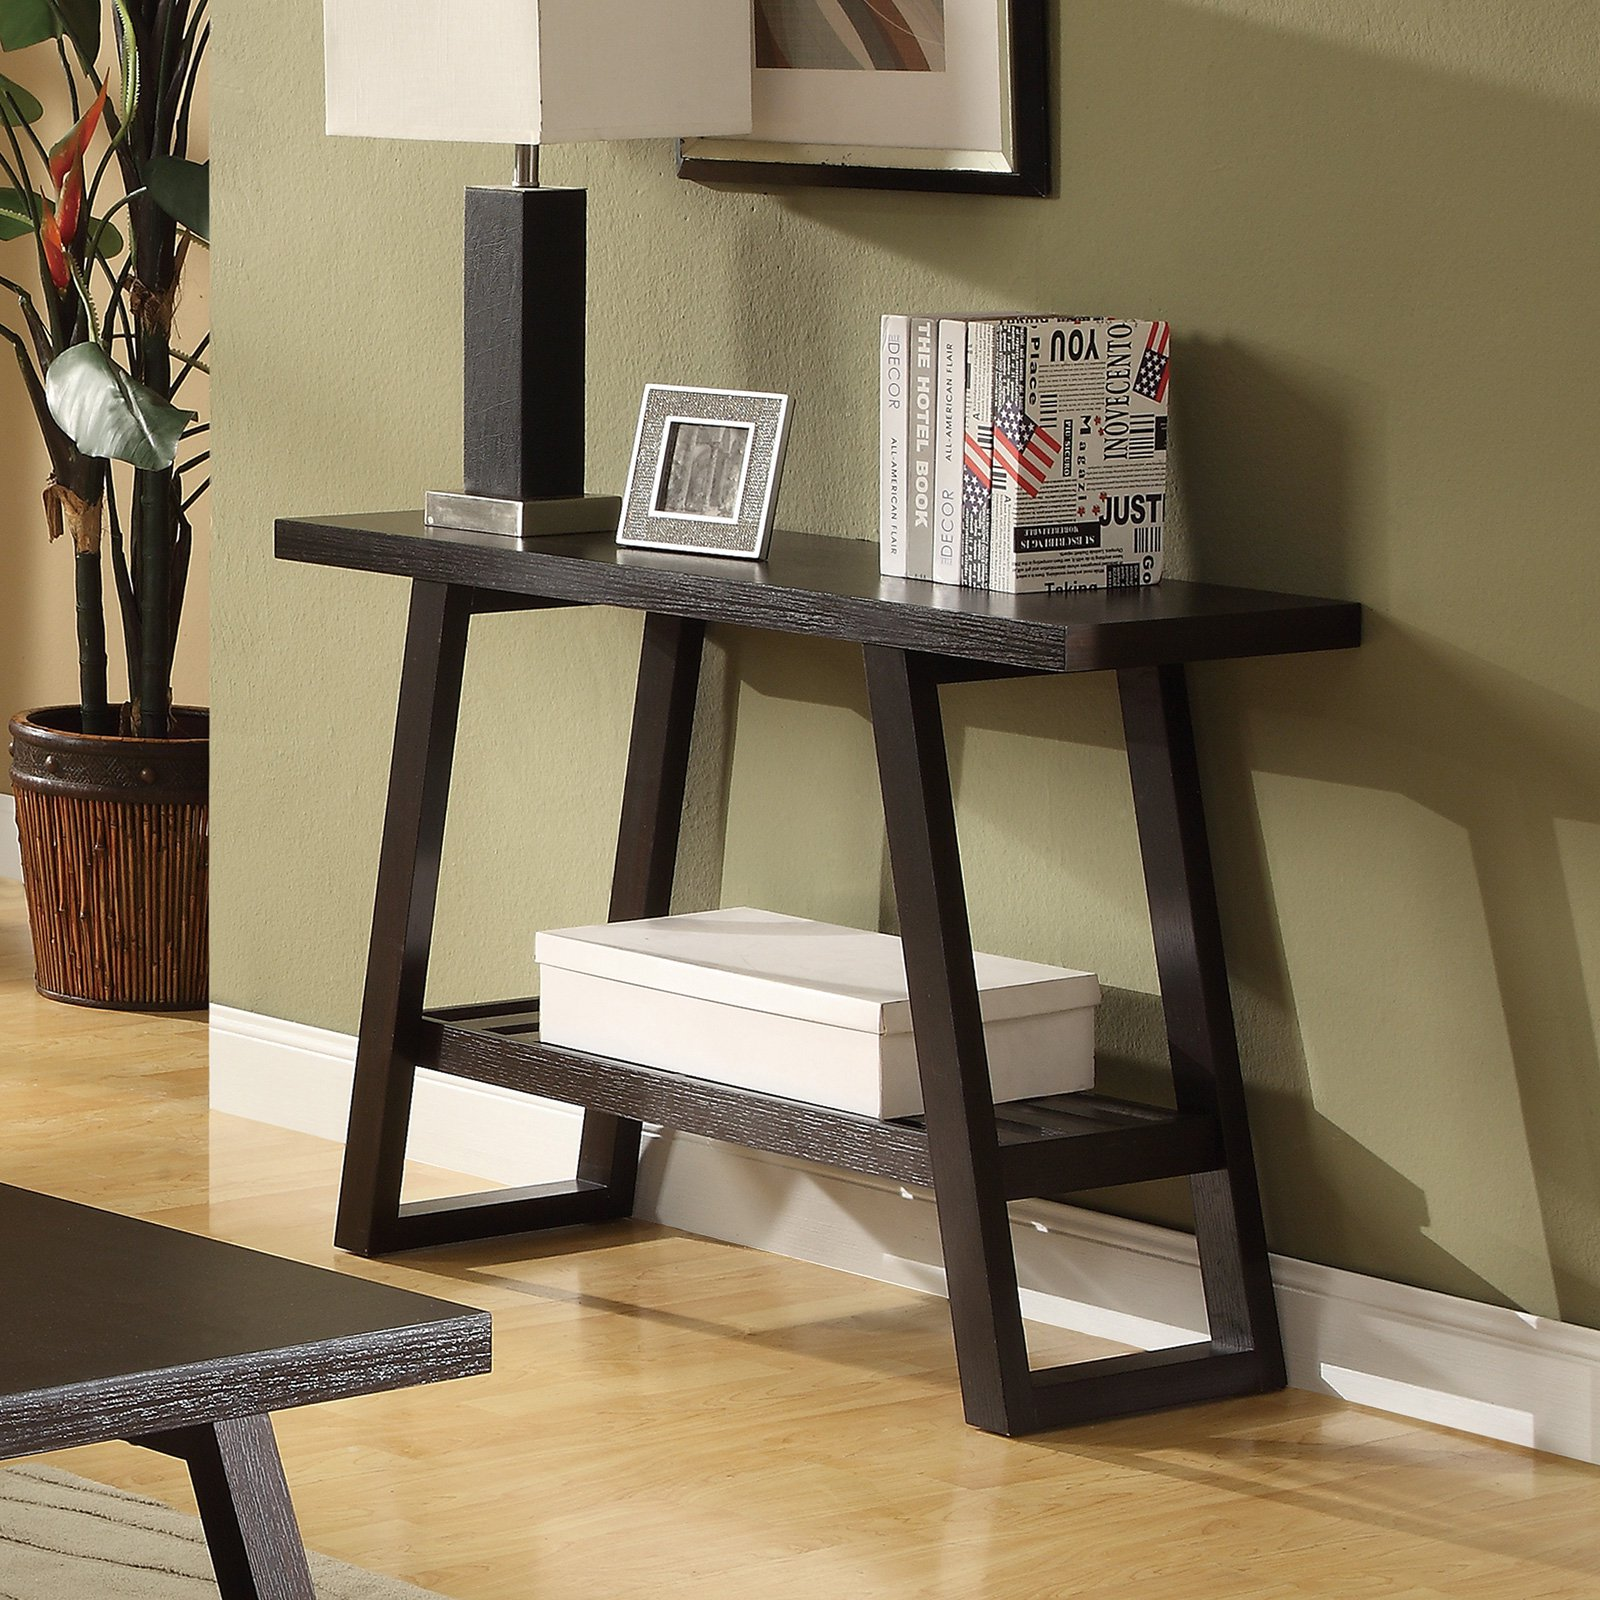 Coaster Furniture Wood Console Table - Cappuccino